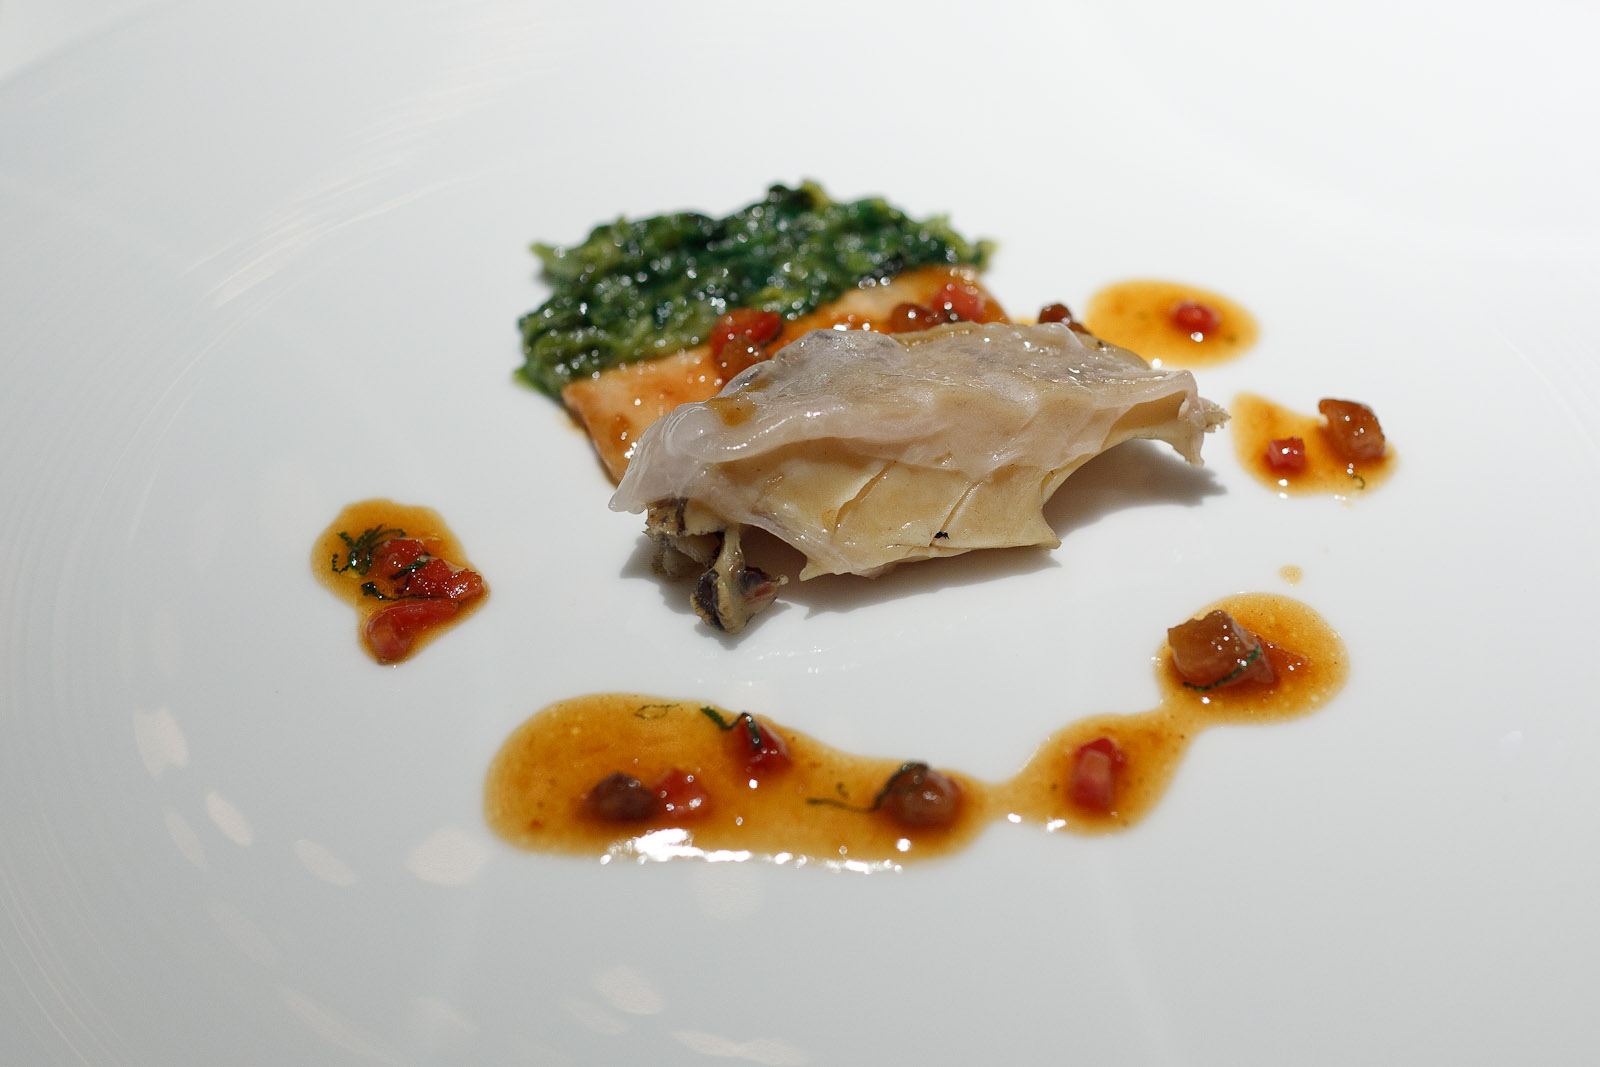 Pierre Gagnaire, Tokyo - Abalone and Meishan ham grilled with sage, braised lettuce heart, chorizo, and crispy lard